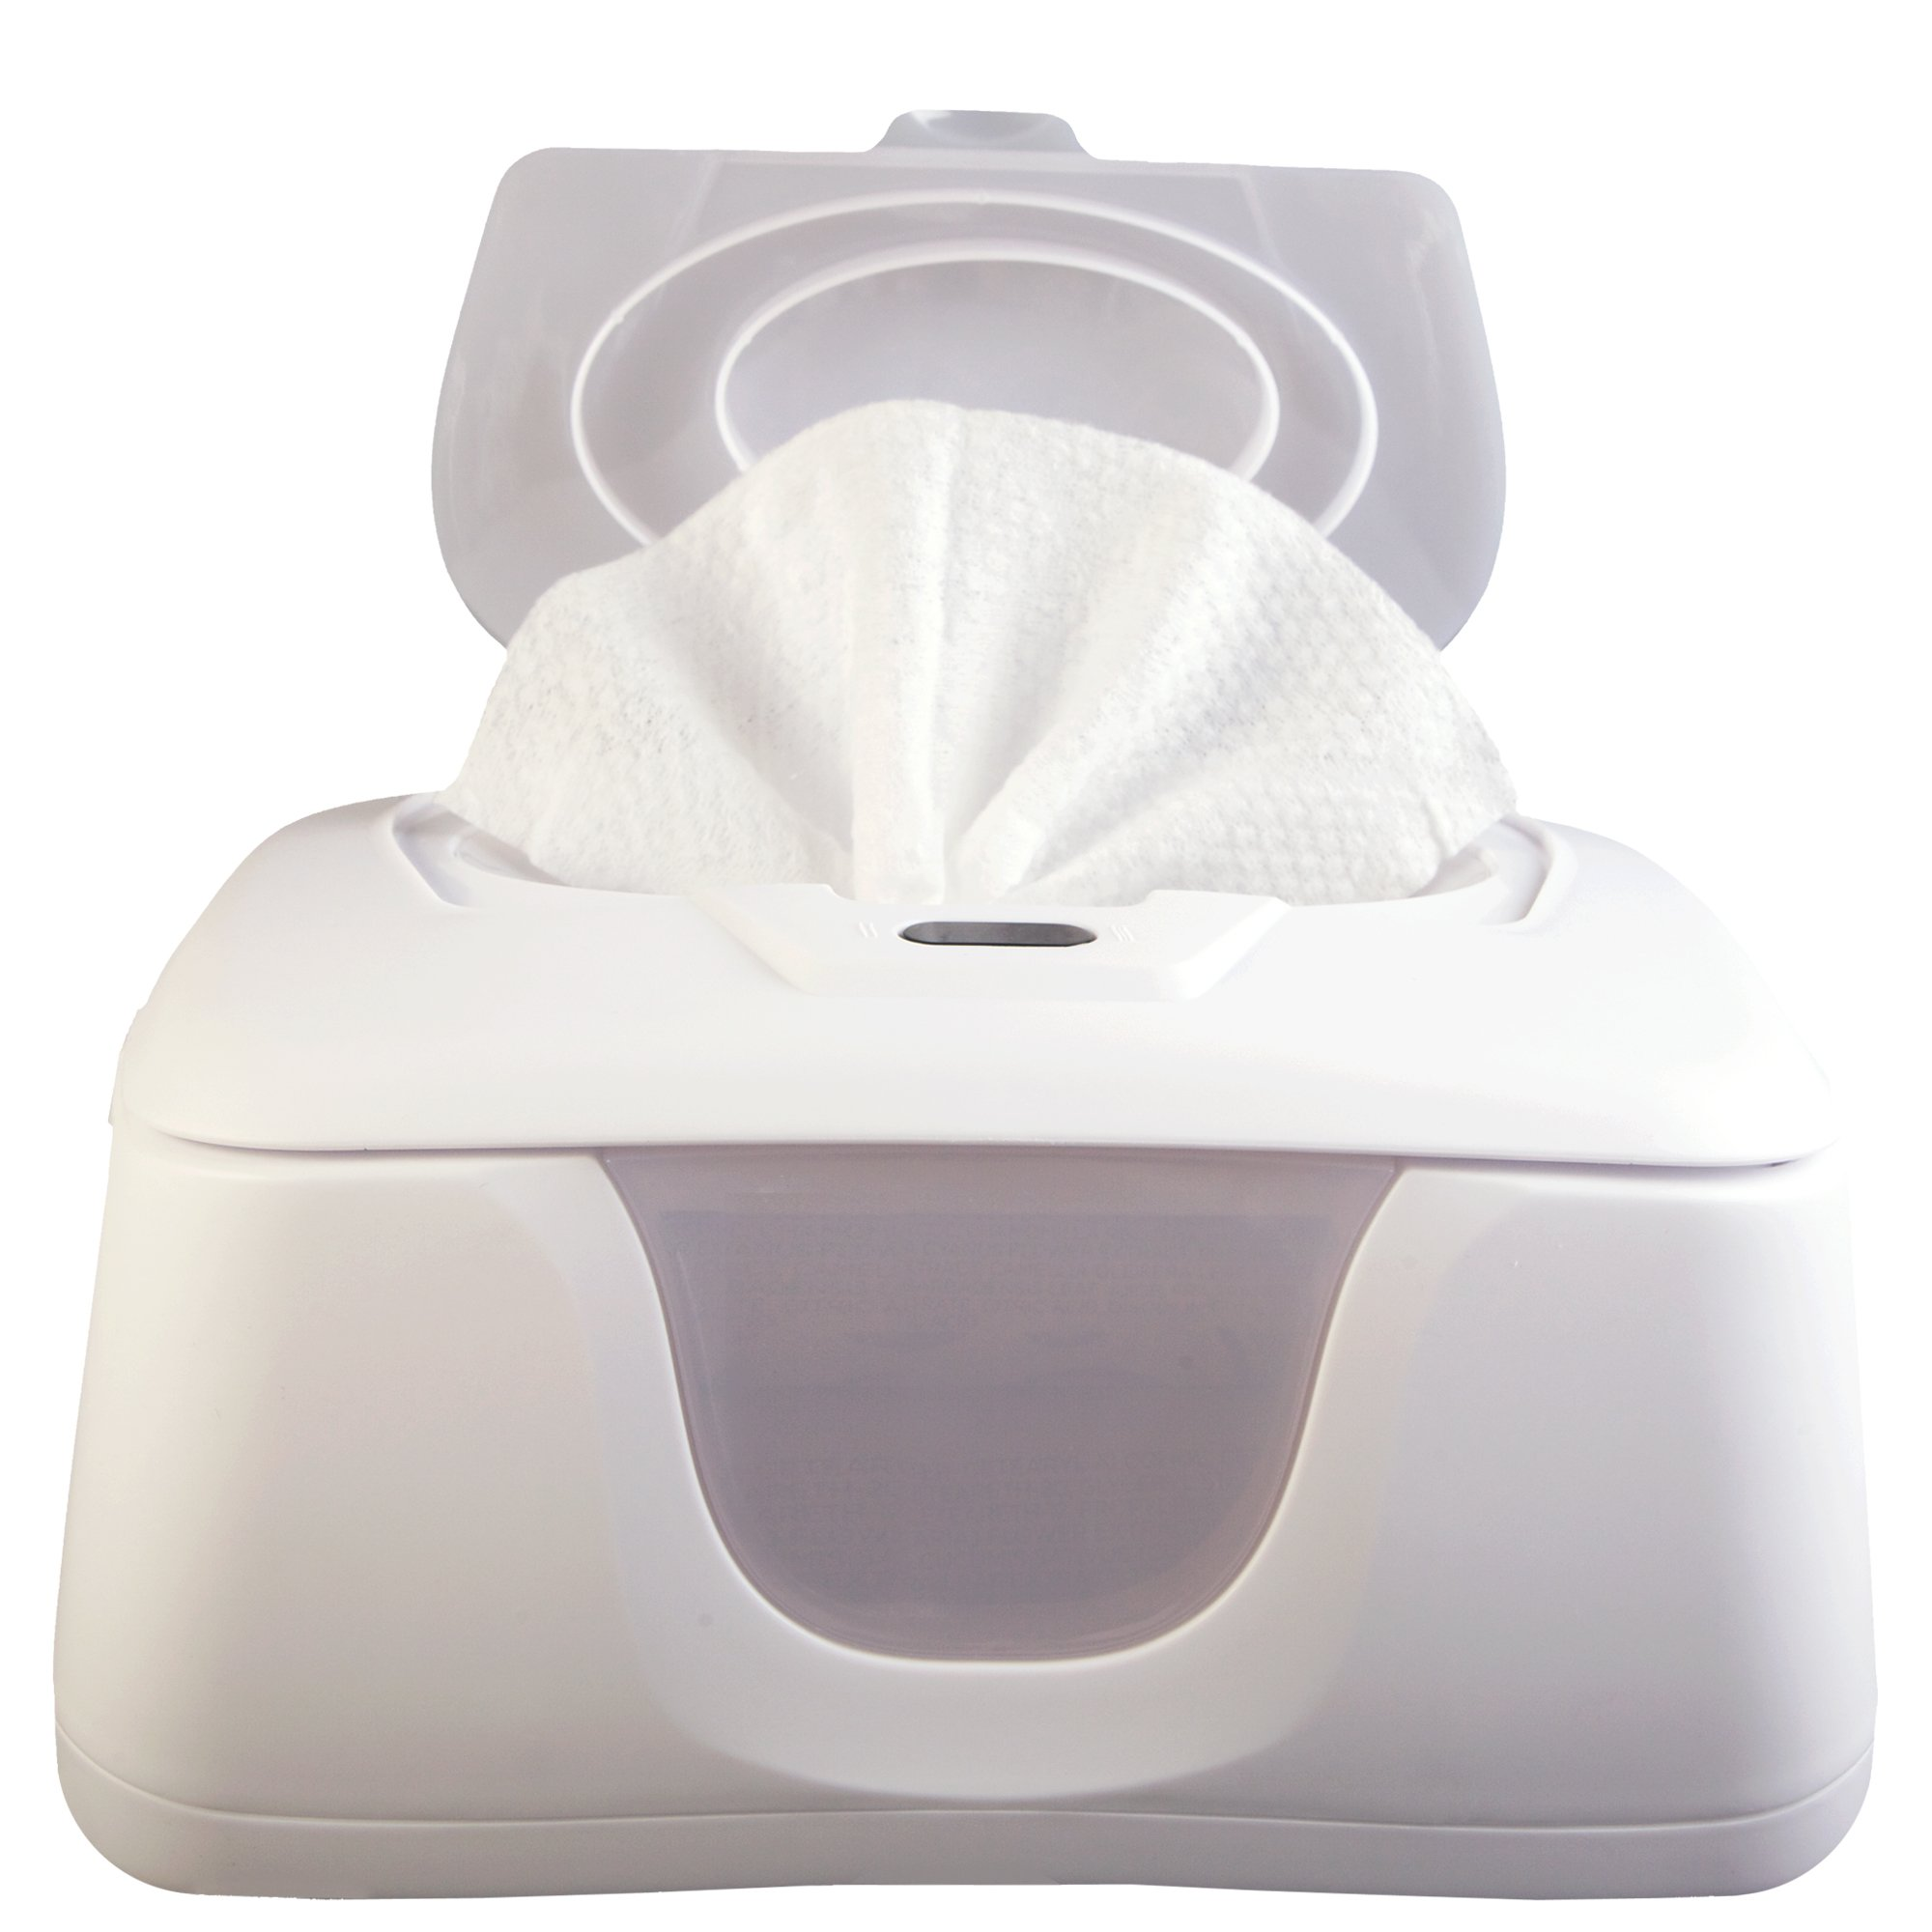 Baby Wipes Warmer and Dispenser, Advanced Features with 4 Bright Auto Off LED Ample Lights for Easy Nighttime Changes, Dual Heat for Baby's Comfort, Improved Design and Only Available at Amazon by GO GO PURE